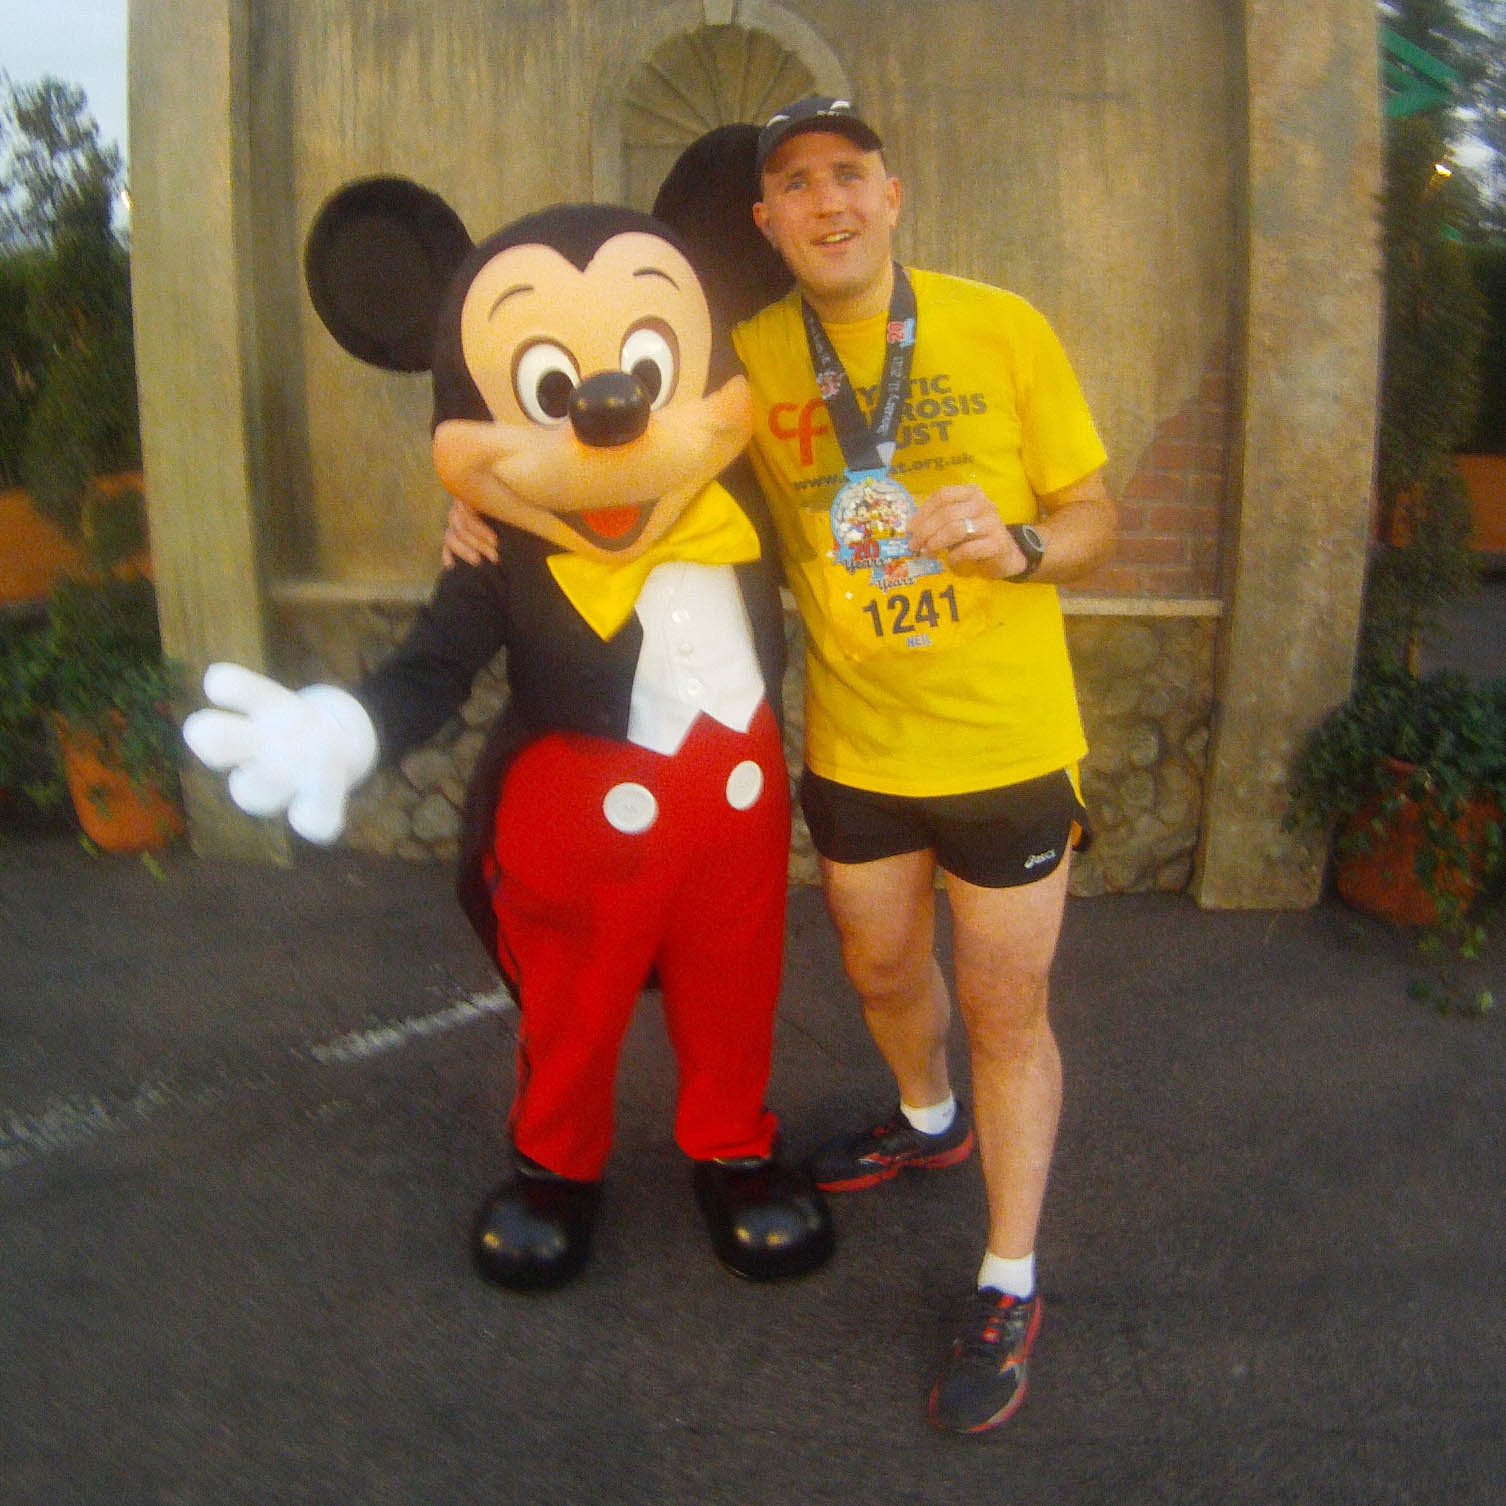 Disney 5k Family Fun Run